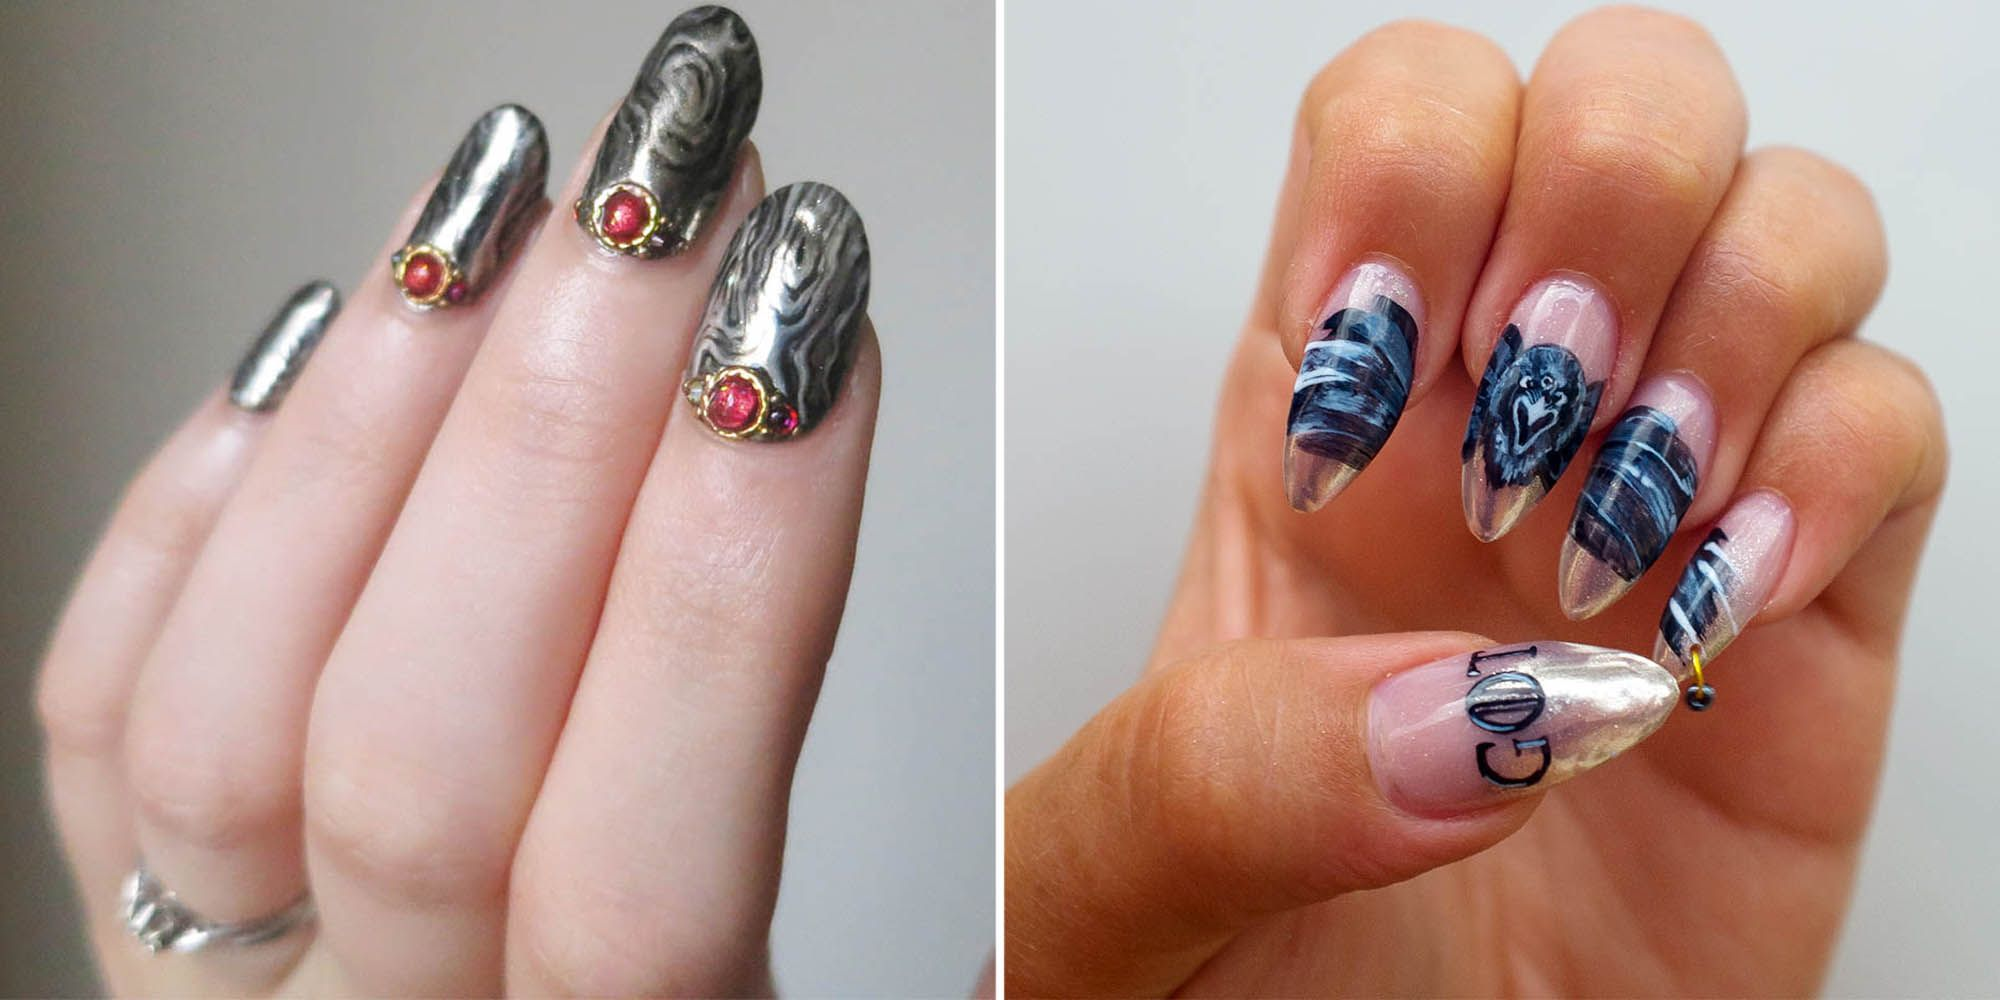 Game Of Thrones Nail Art Designs Inspired By Season 7